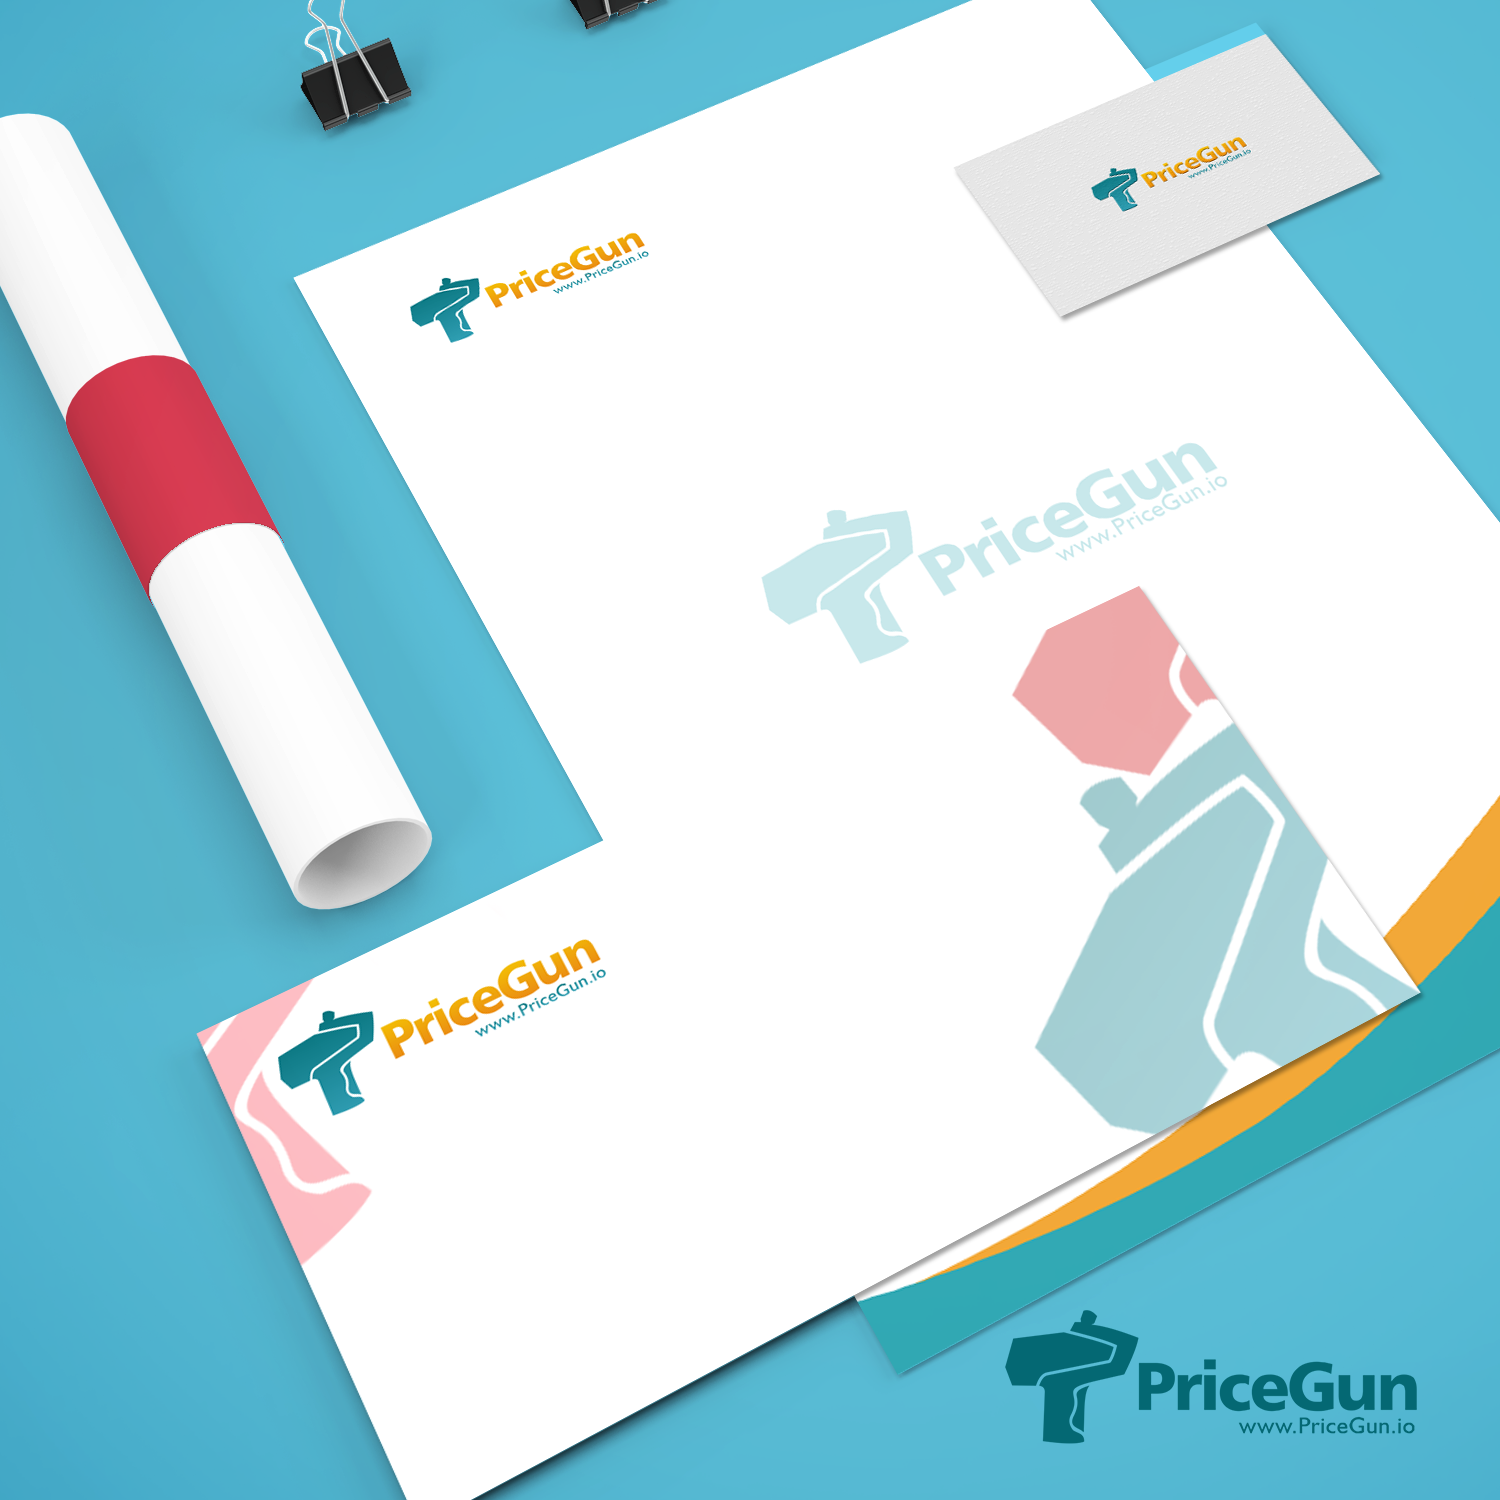 Bold, Playful, Online Shopping Logo Design for PriceGun or PRICEGUN ...